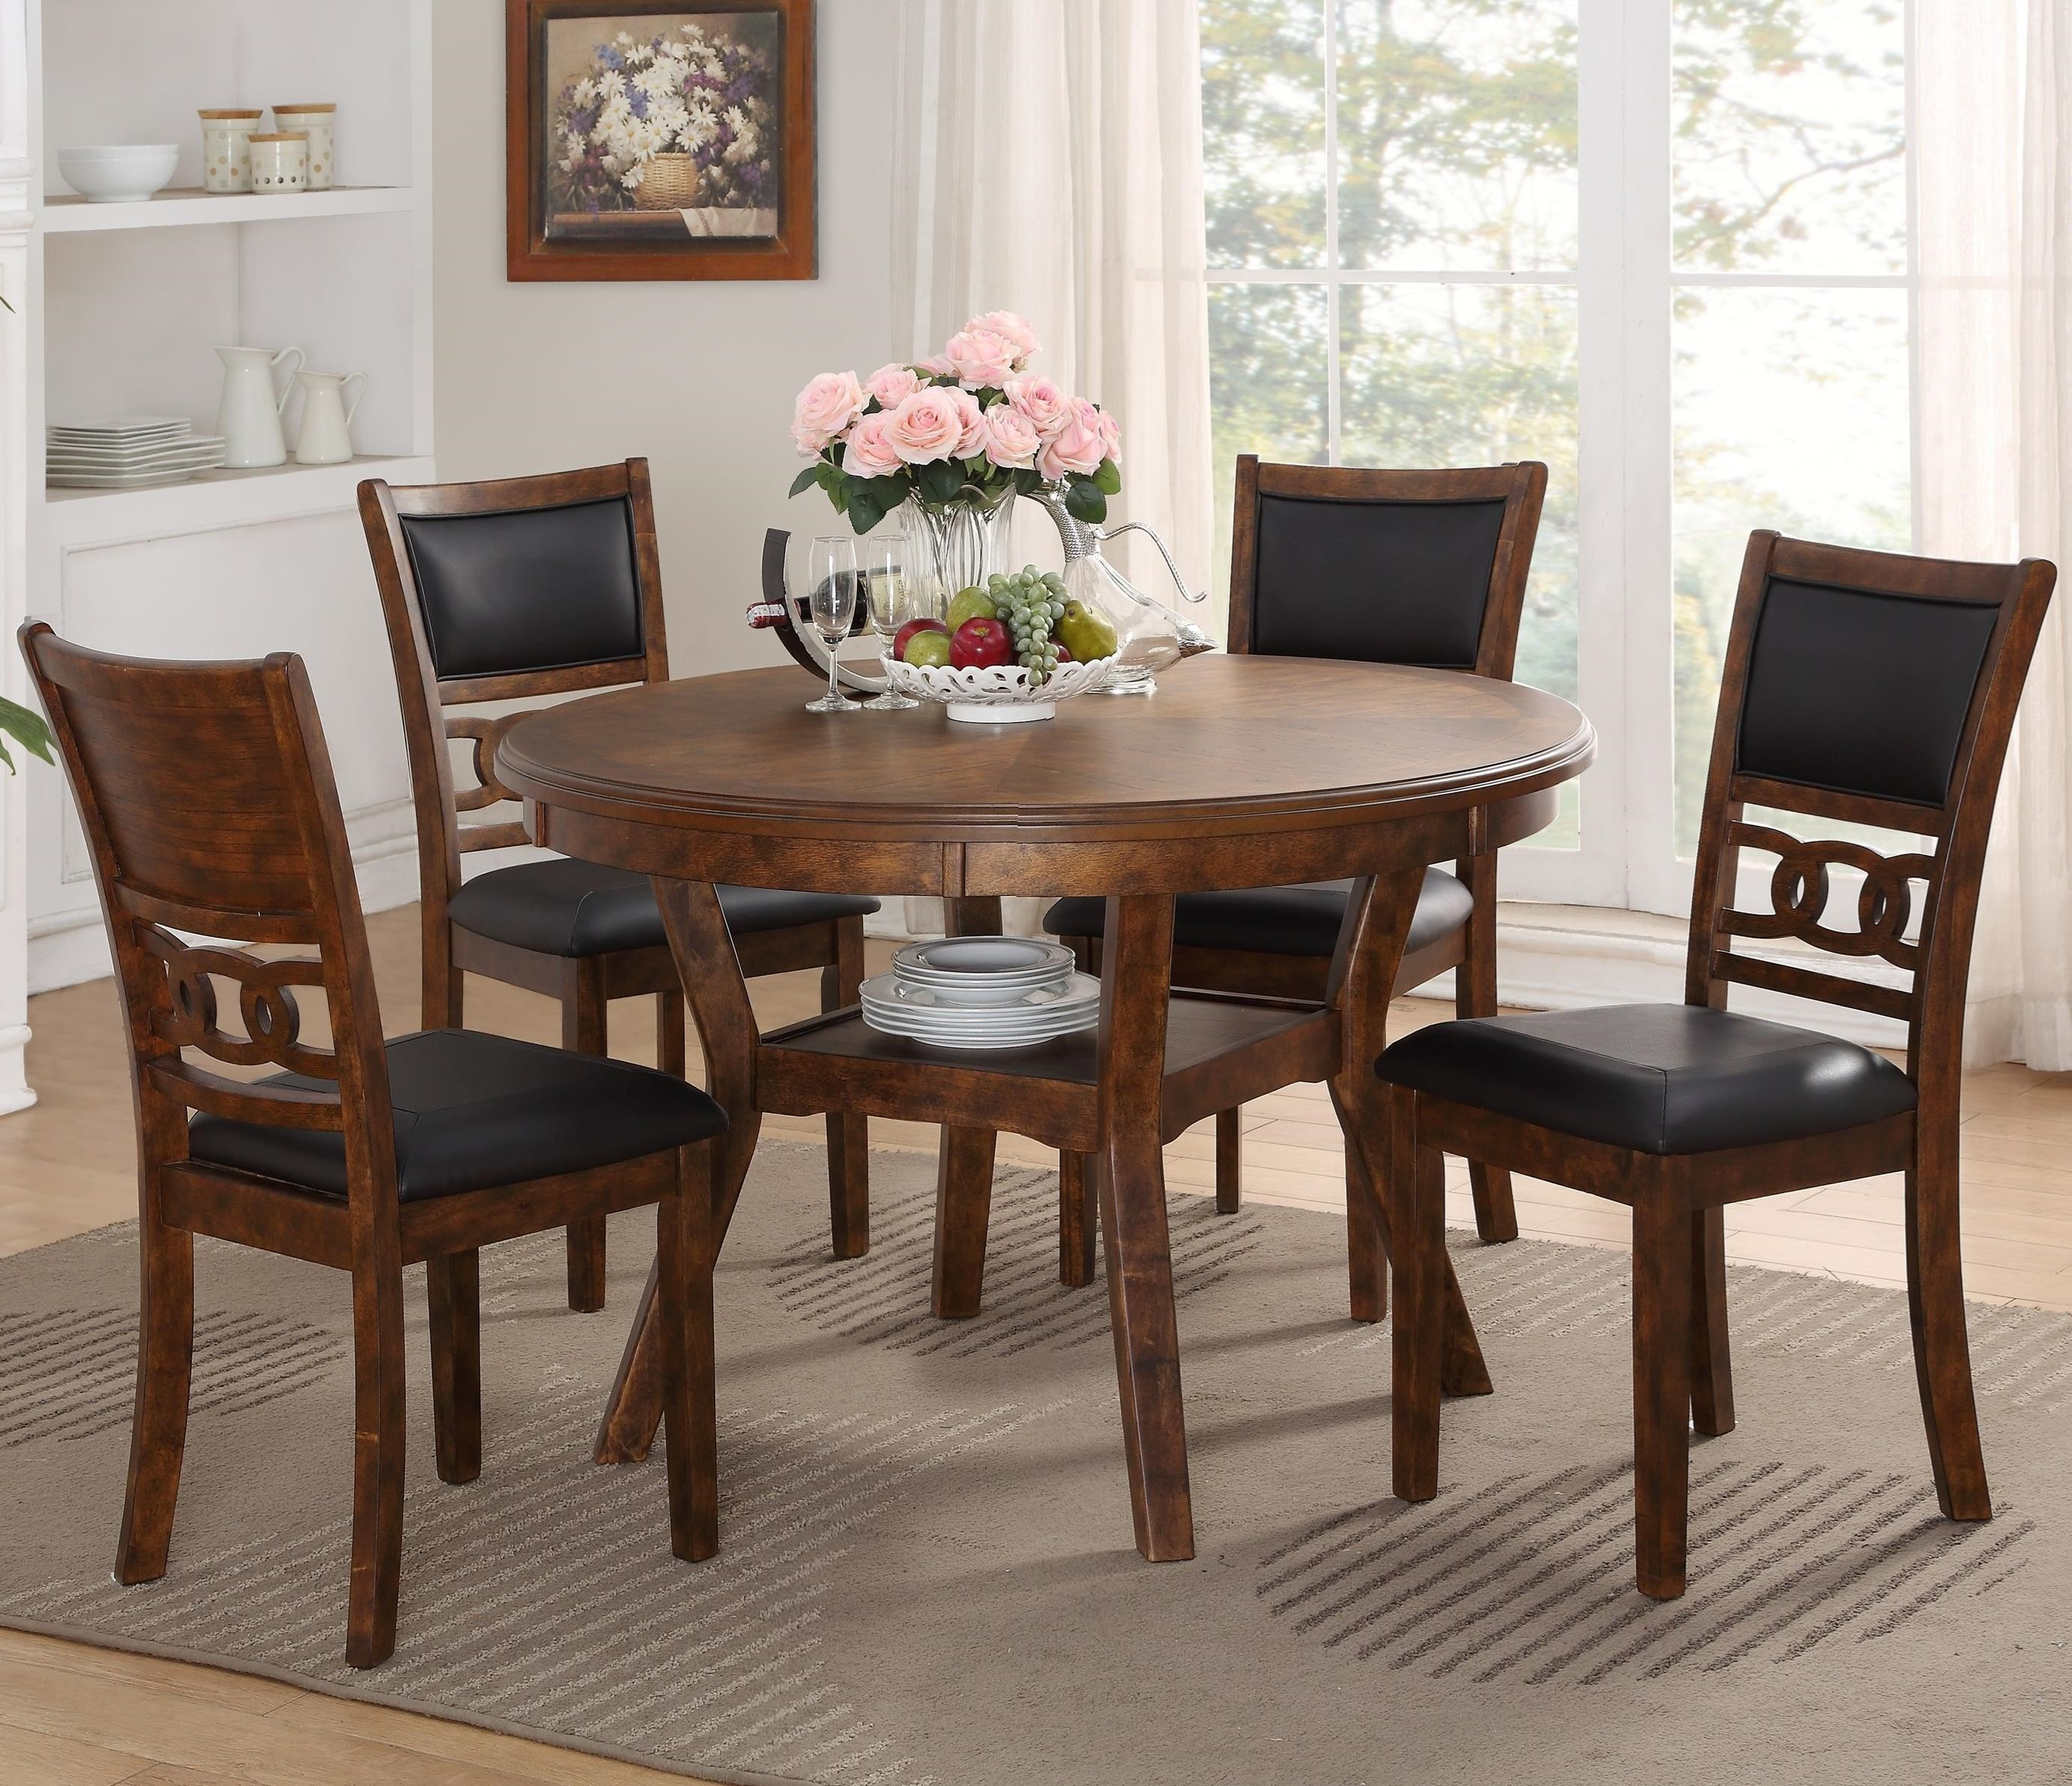 New Classic GiaDining Table and Chair Set with 4 Chairs : table 4 chairs set - Pezcame.Com